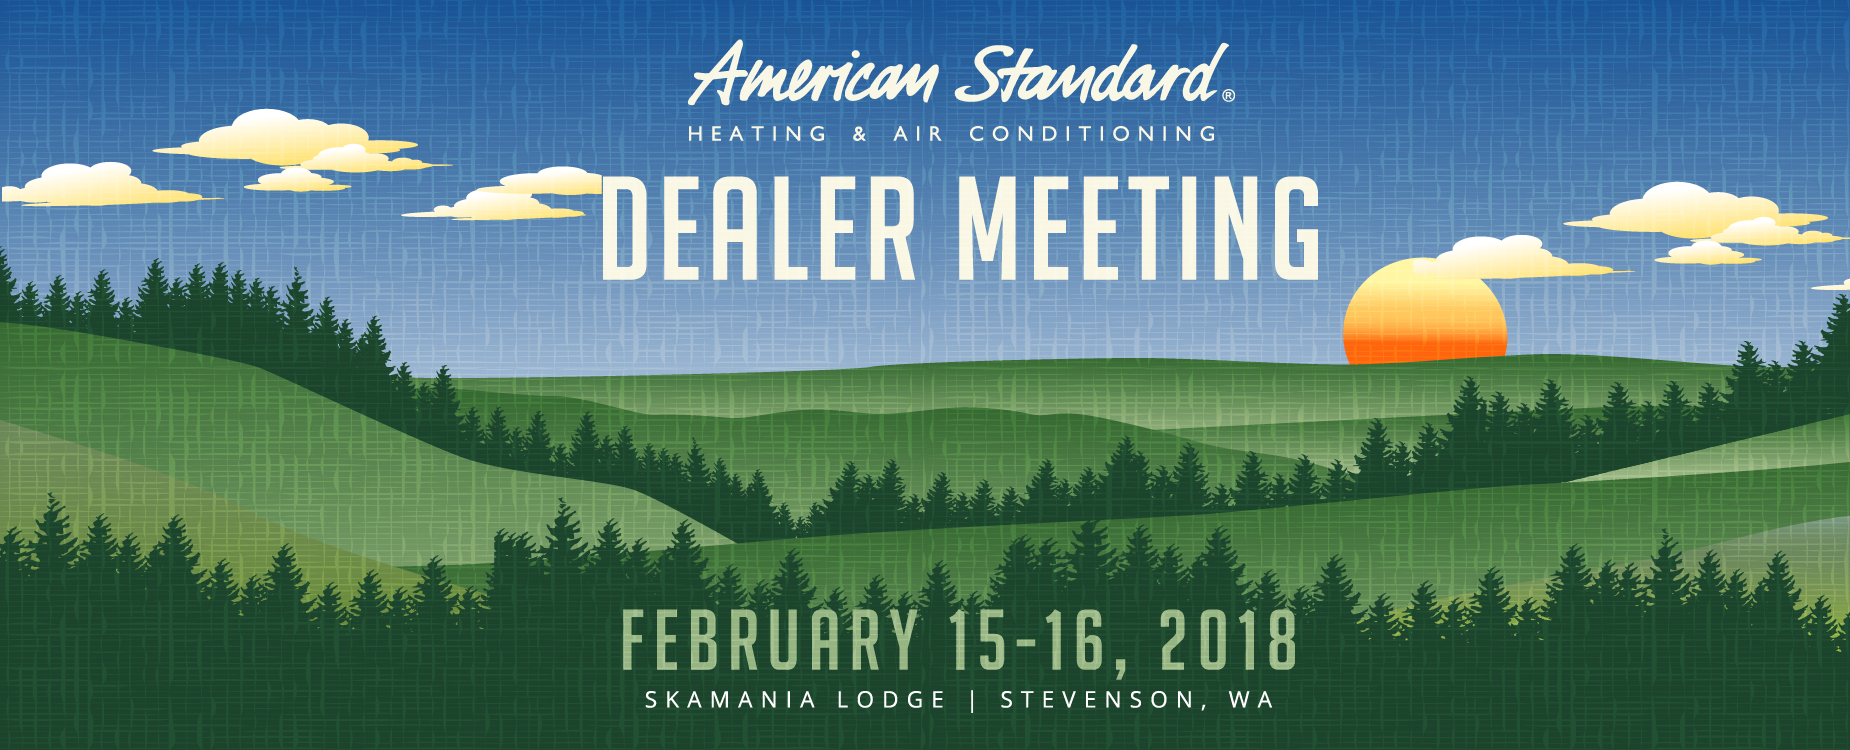 2018 American Standard DEALER MEETING